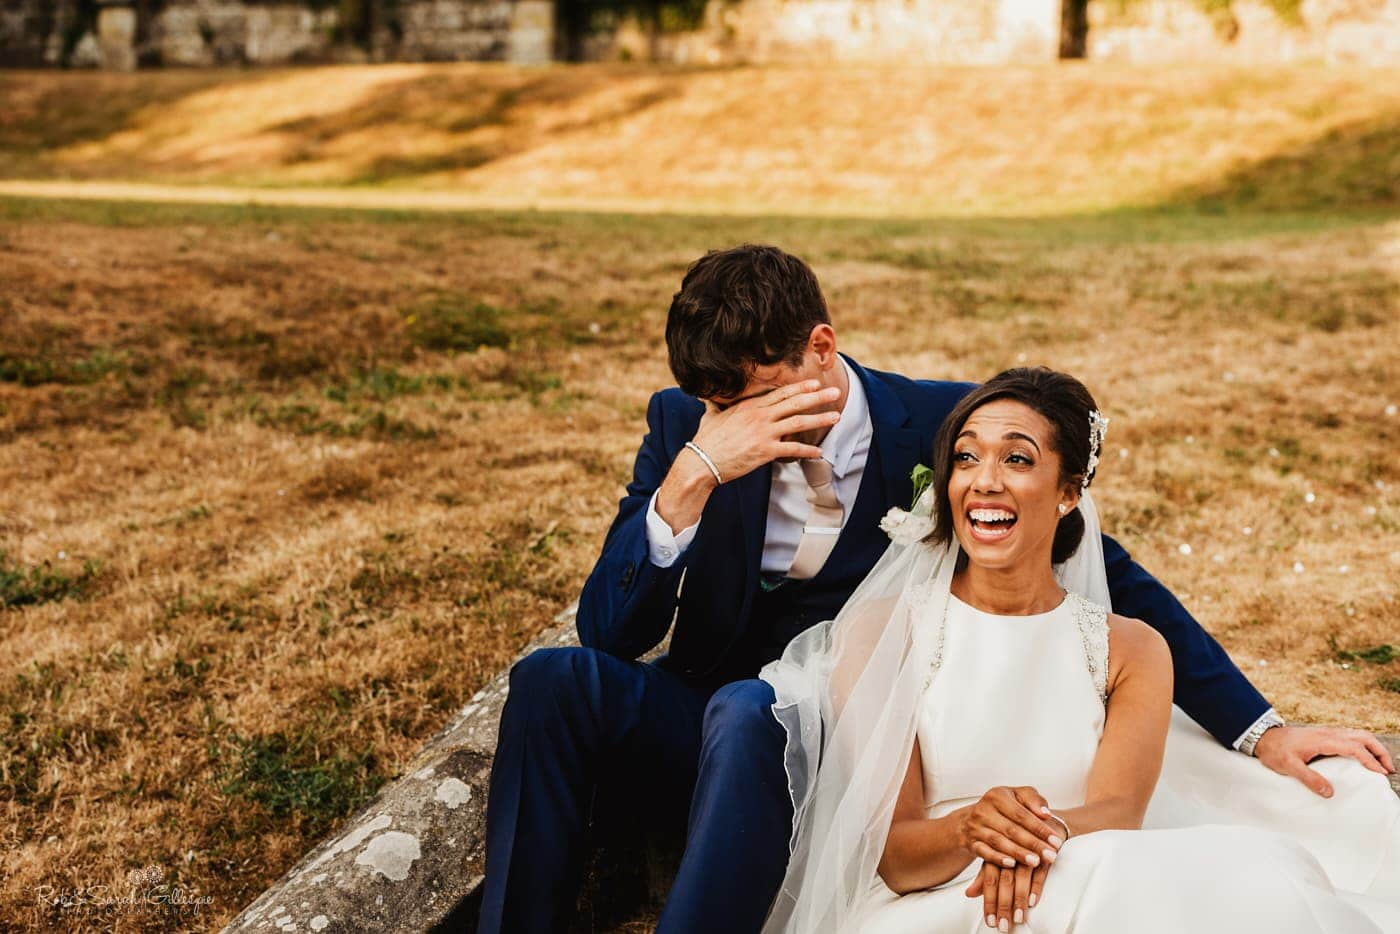 Bride and groom sitting on steps laughing and relaxed